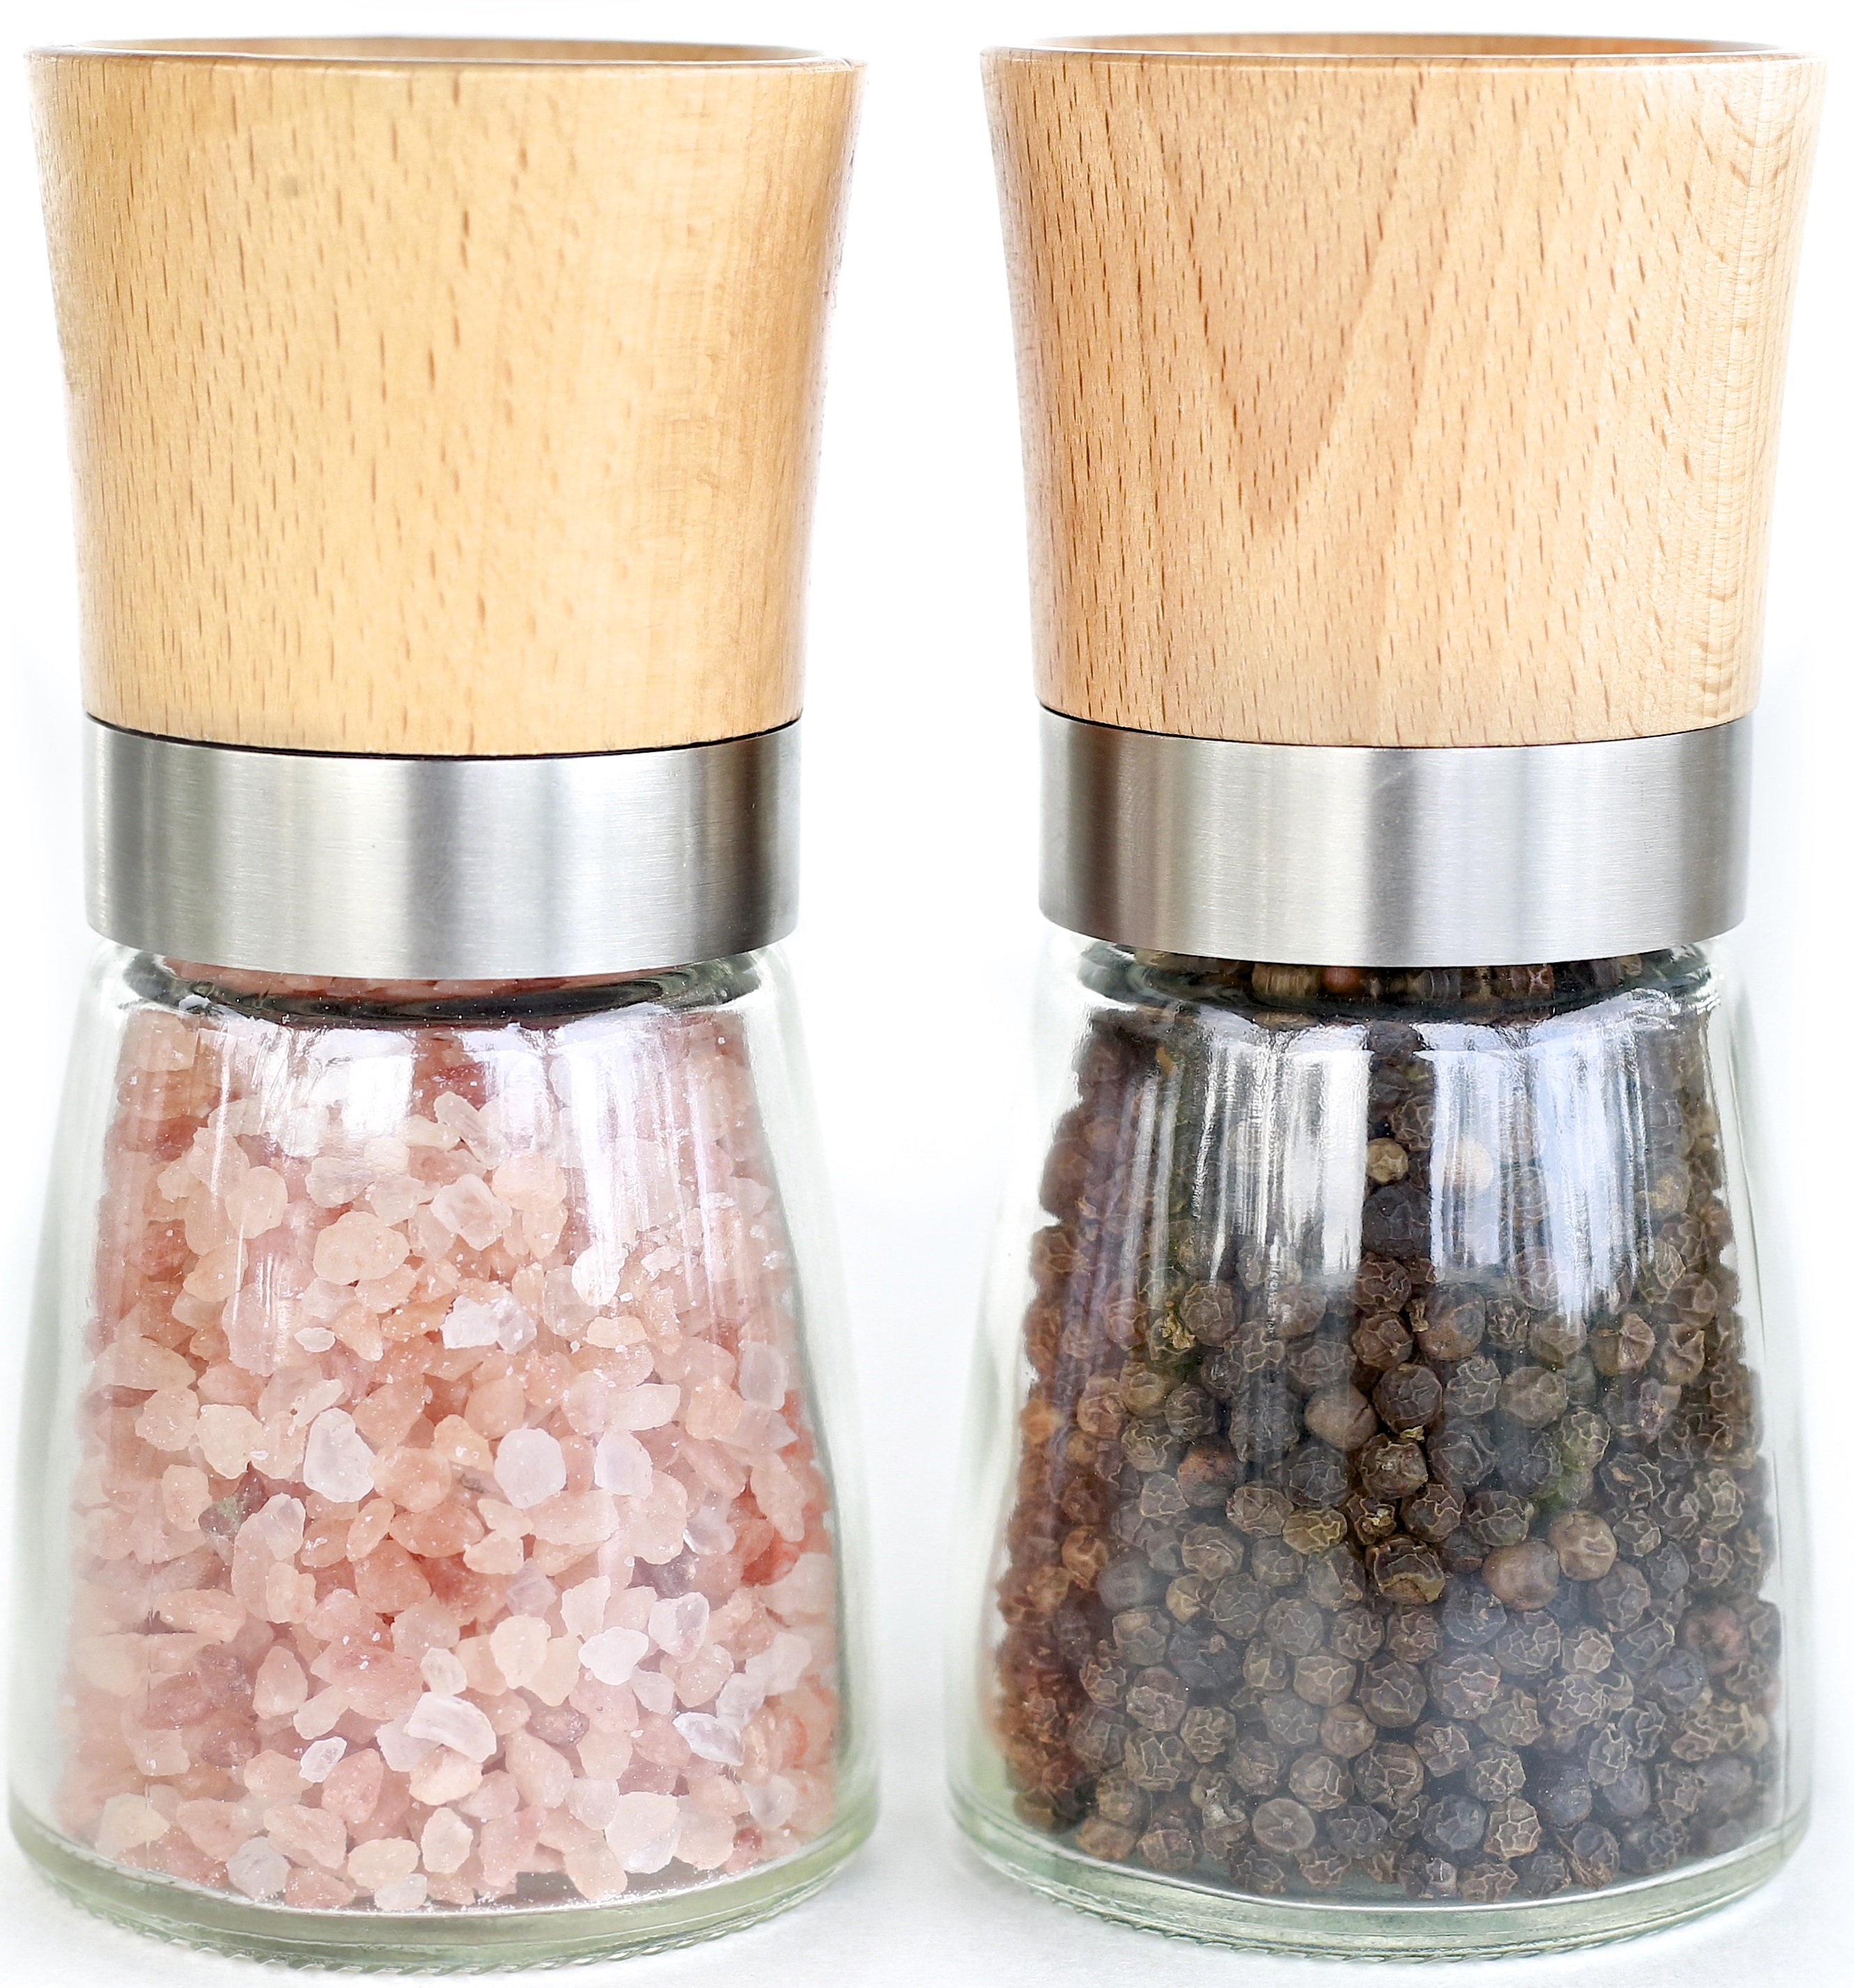 Glamamama s goodies modern wood and glass salt